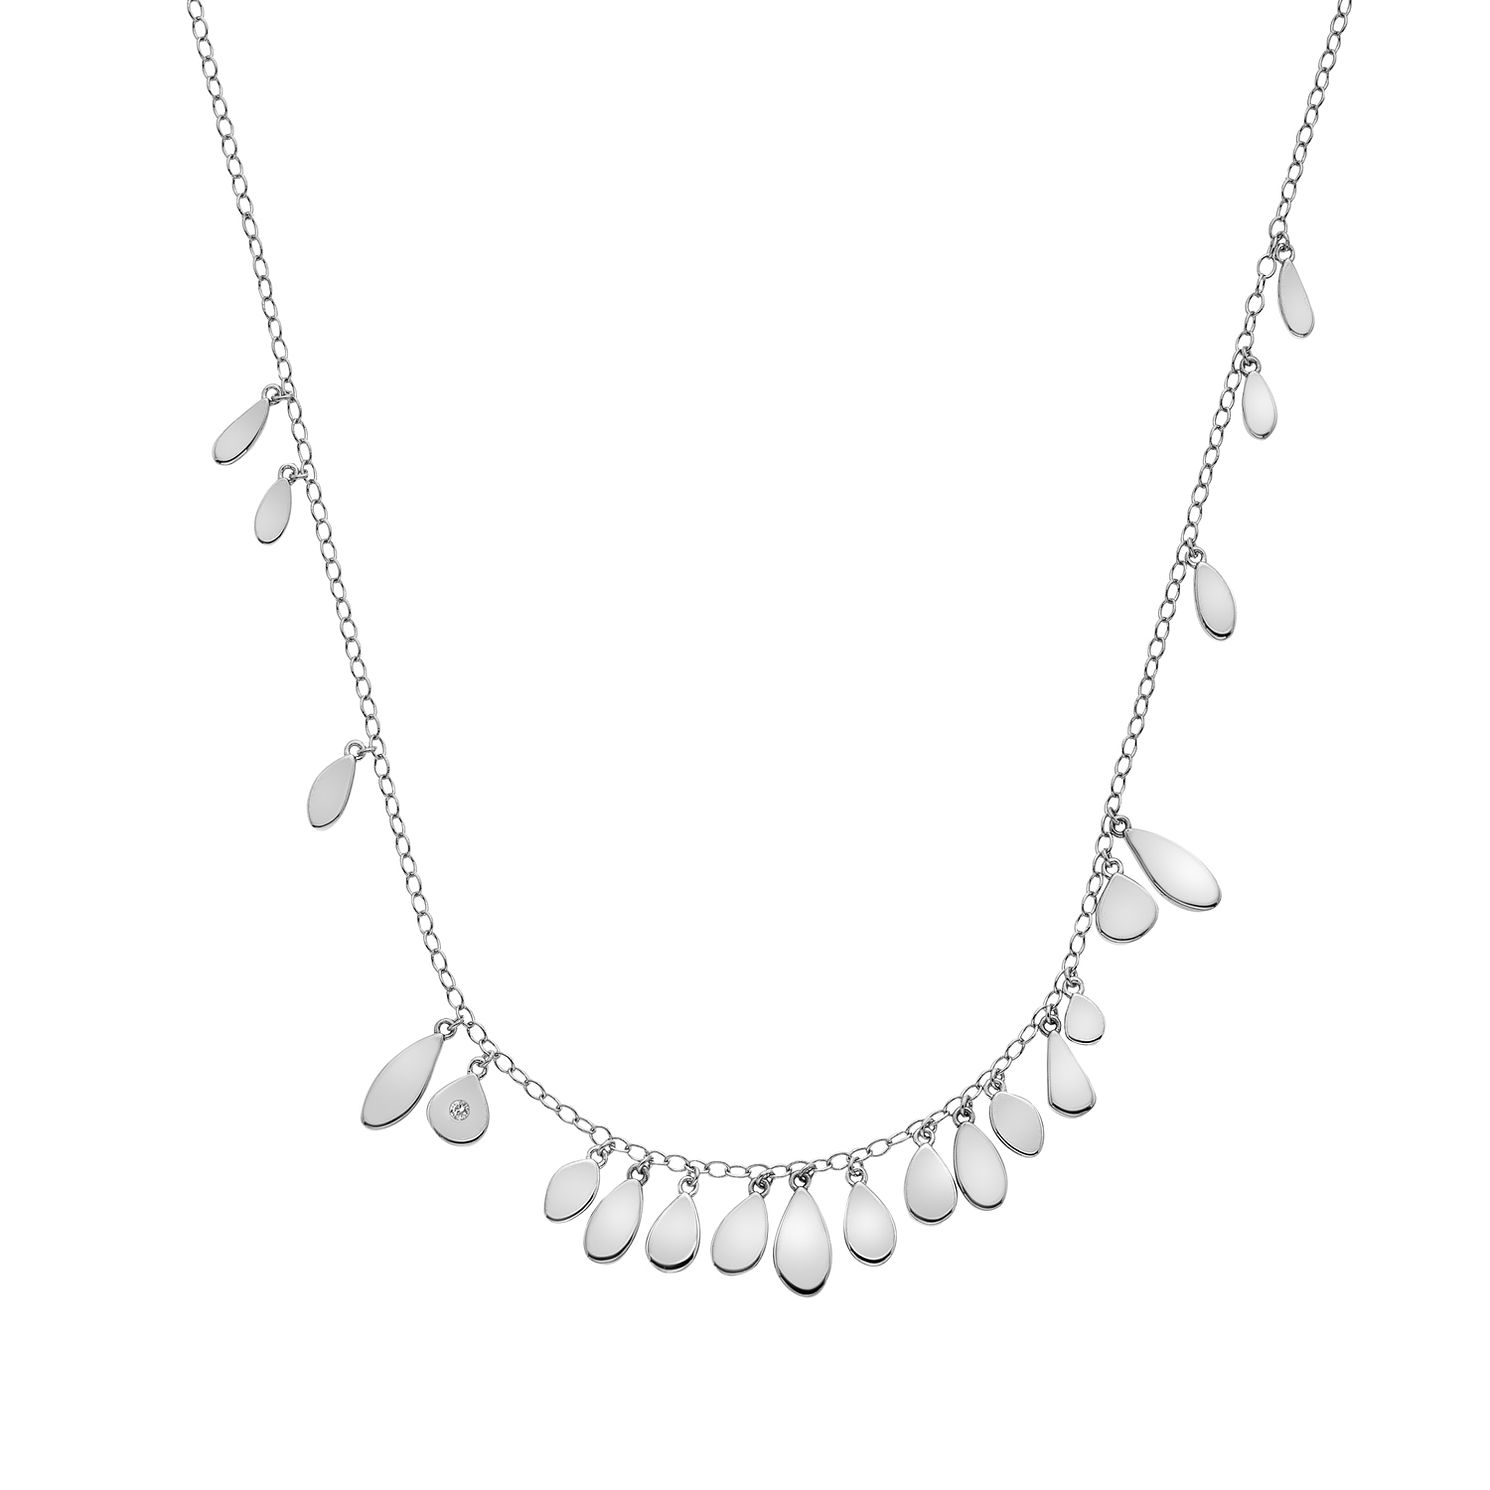 Hot Diamonds Sterling Silver Monsoon Statement Necklace - Product number 5132606